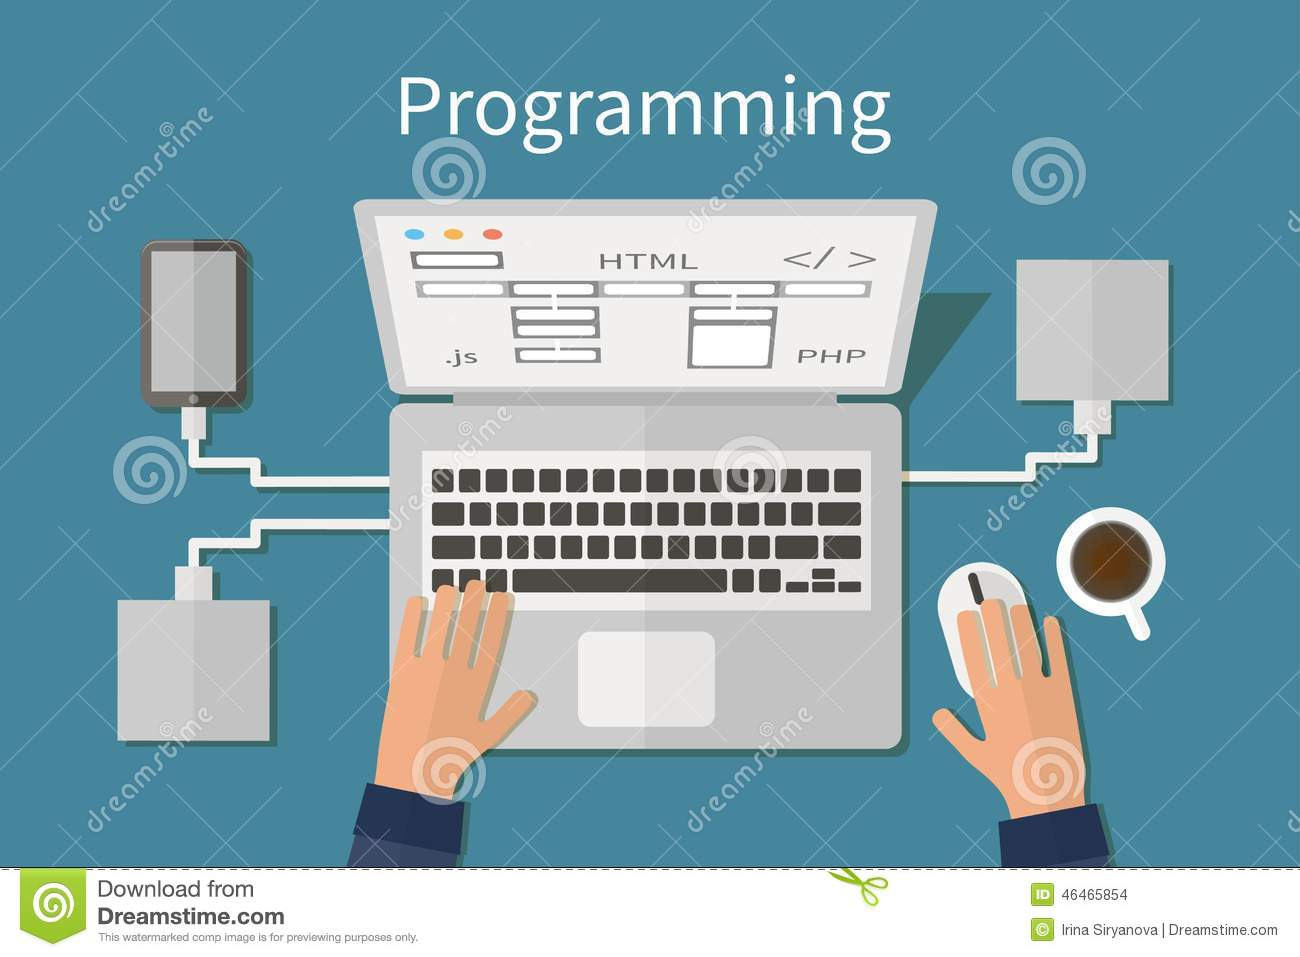 Programando e codificando, deveopment do Web site, Web